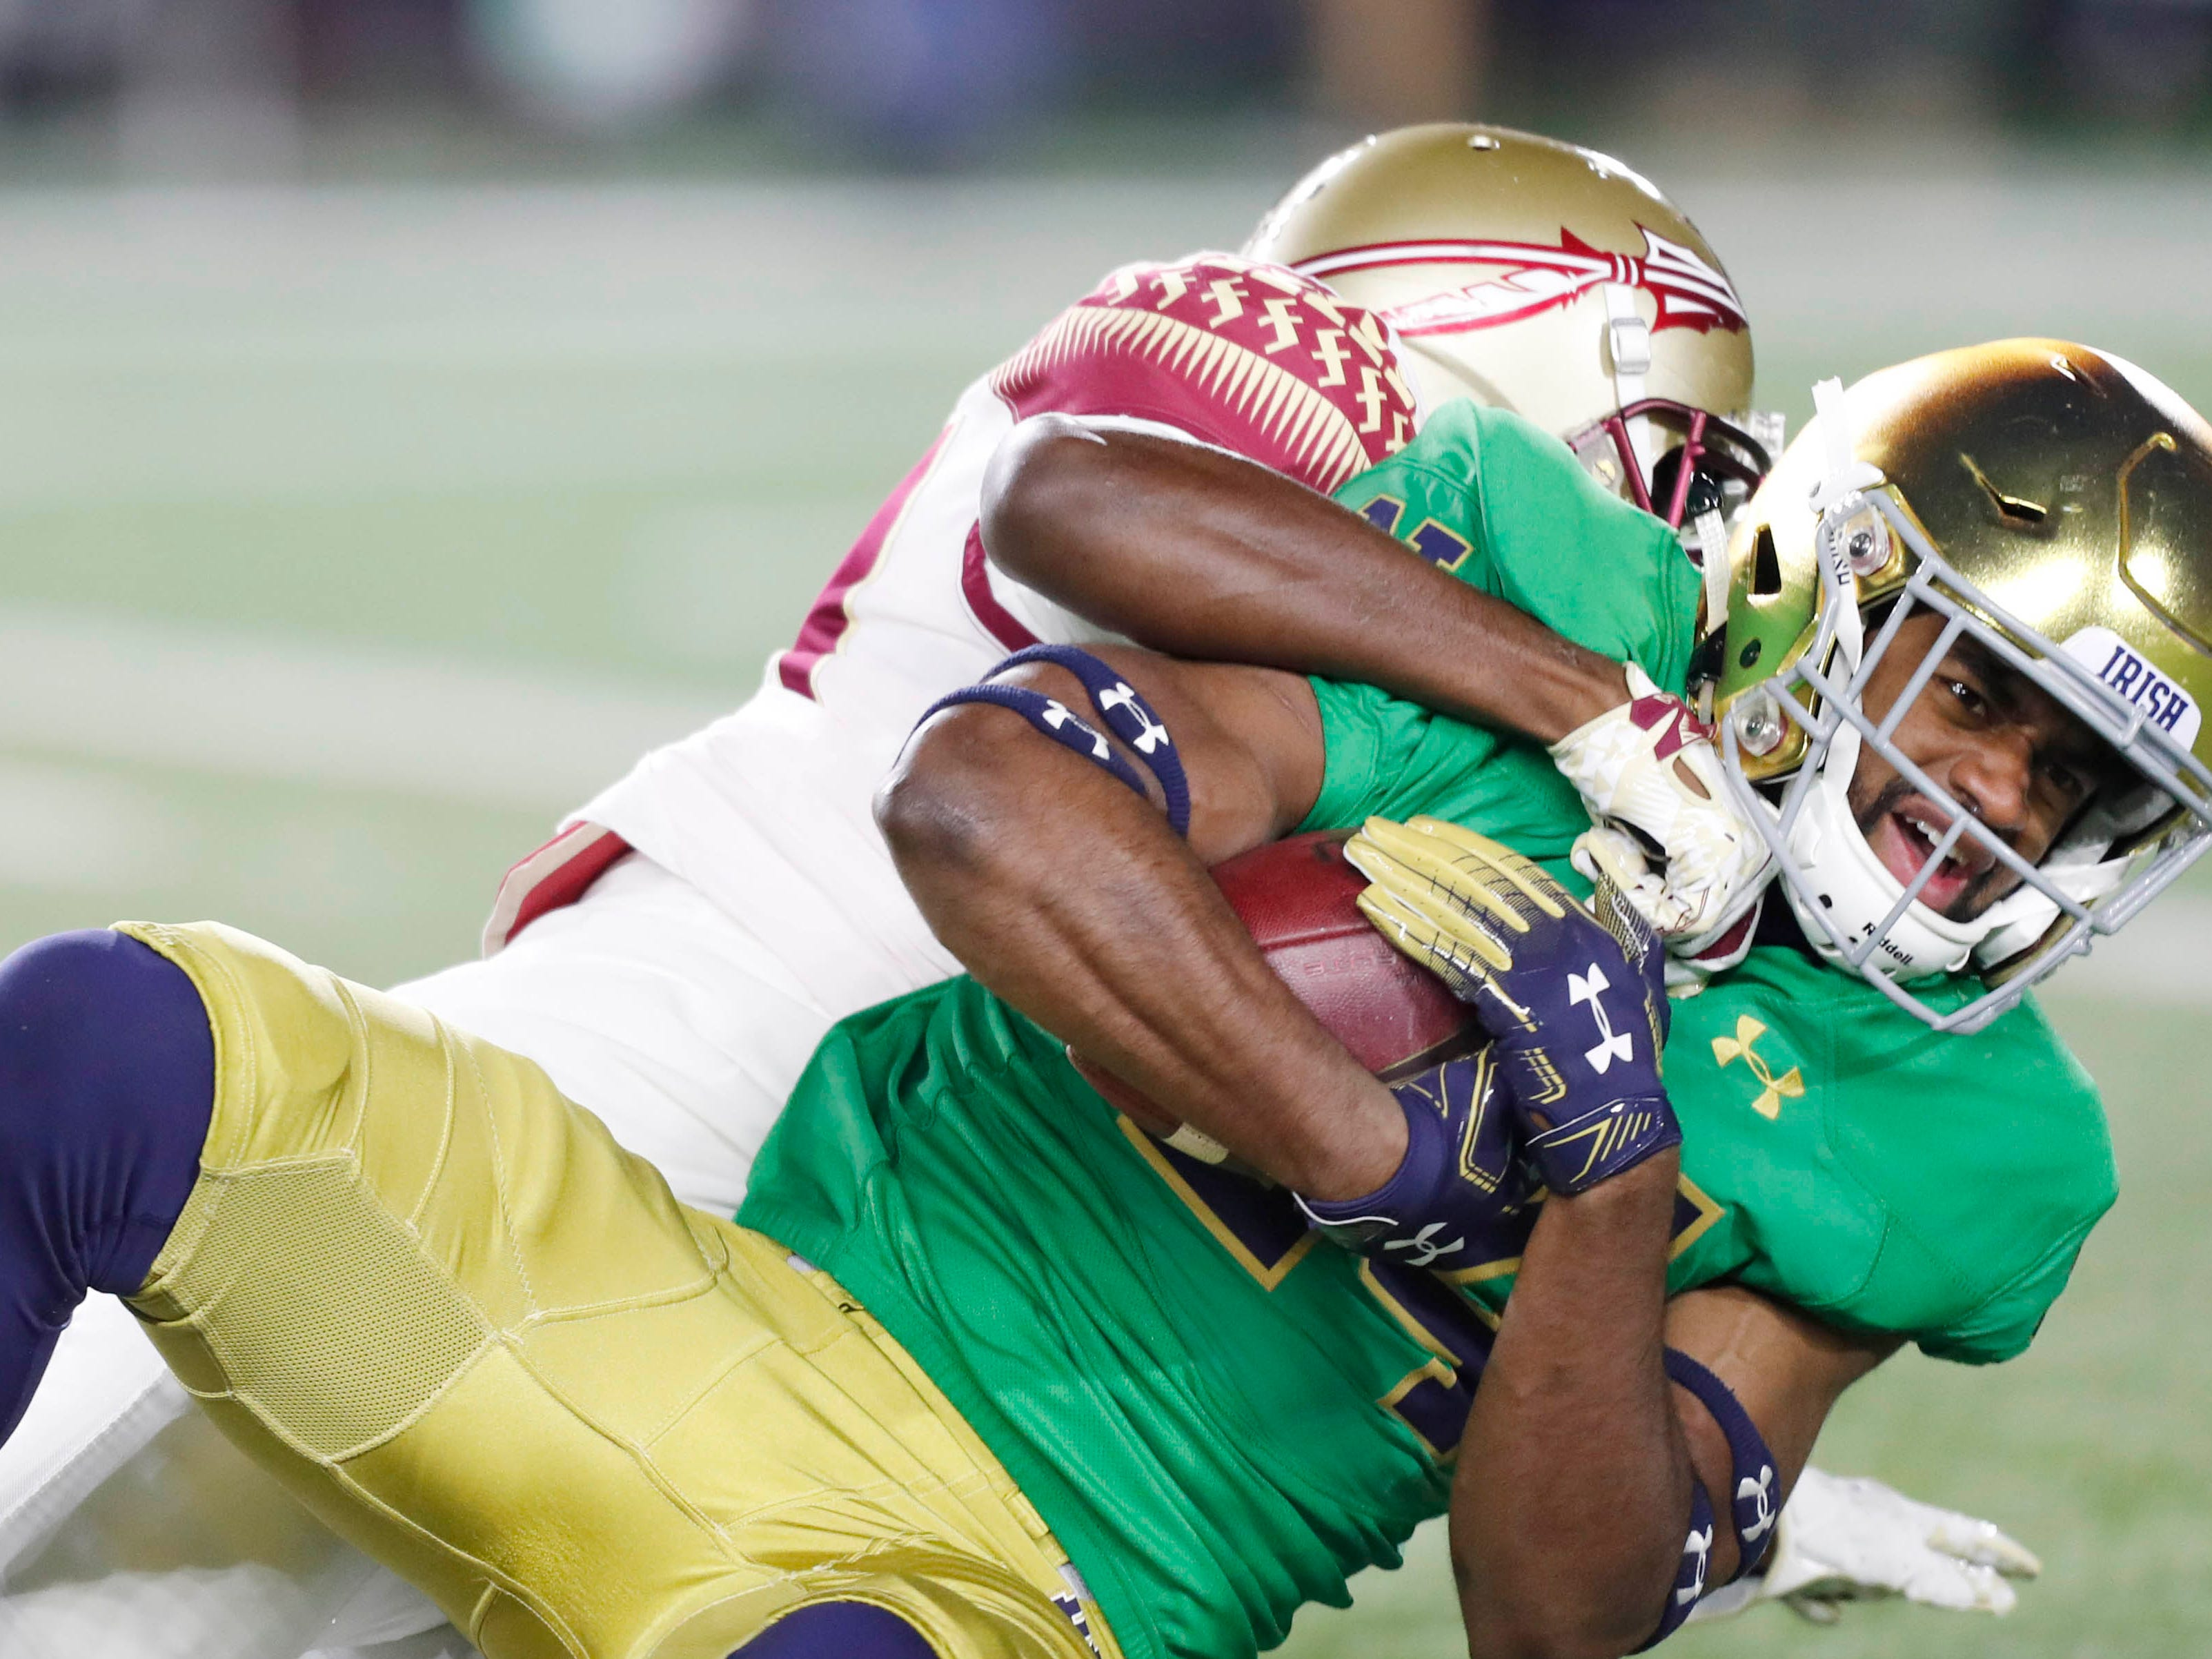 Nov 10, 2018; South Bend, IN, USA; Notre Dame Fighting Irish safety Nick Coleman (24) after making an interception is tackled by the Florida State Seminoles during the first quarter at Notre Dame Stadium. Mandatory Credit: Brian Spurlock-USA TODAY Sports